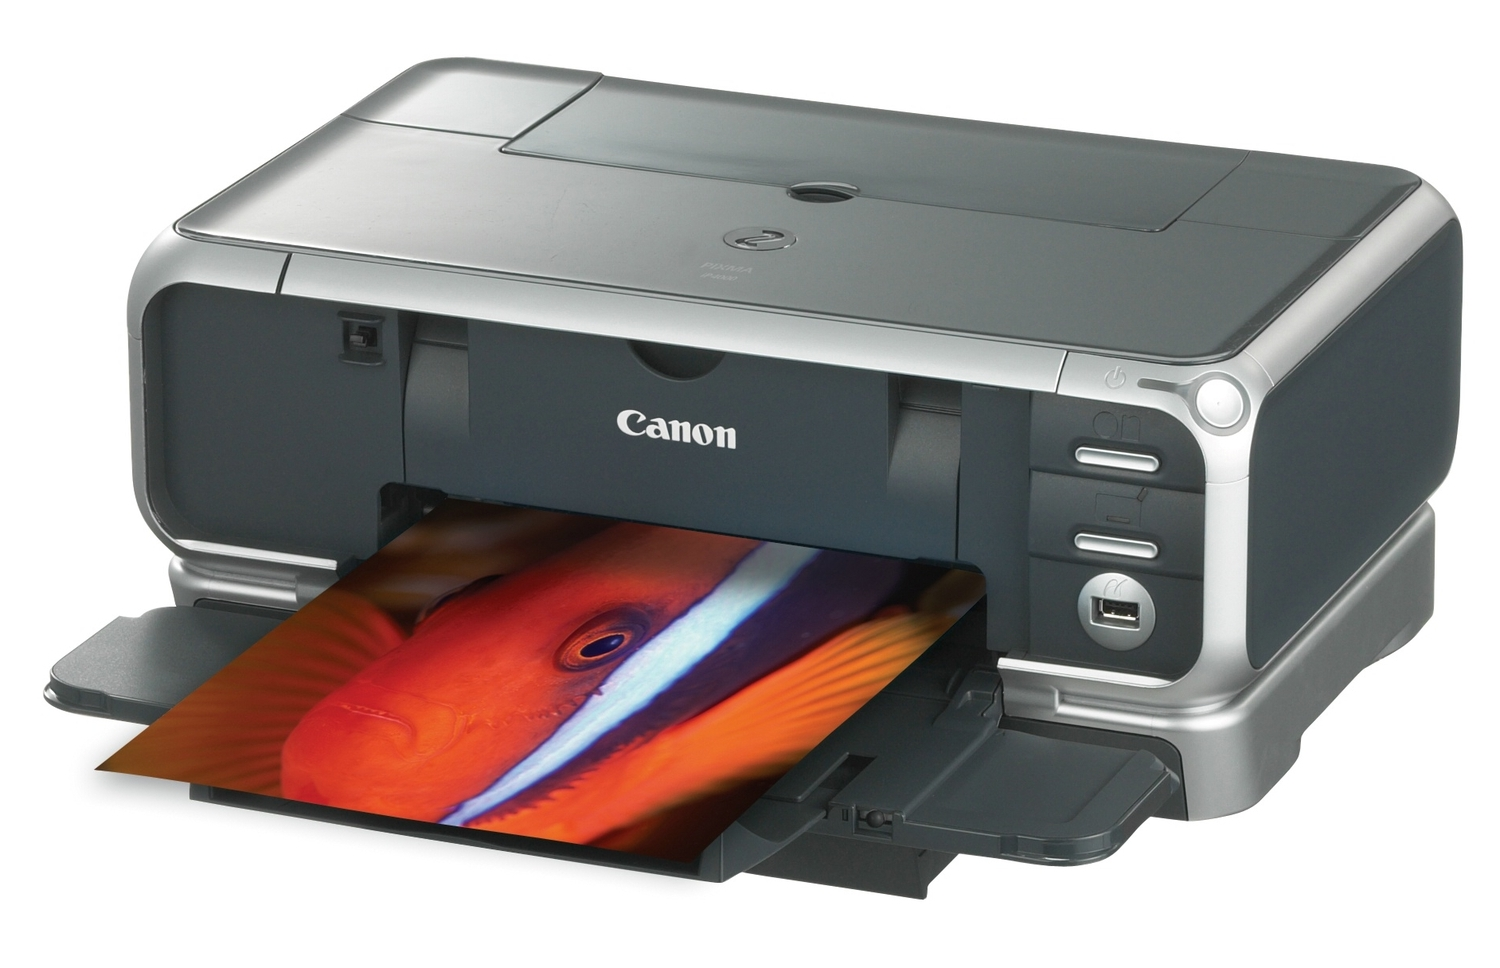 Canon Pixma iP4000 Specifications - Printers & Scanners - Inkjet Printers -  PC World Australia